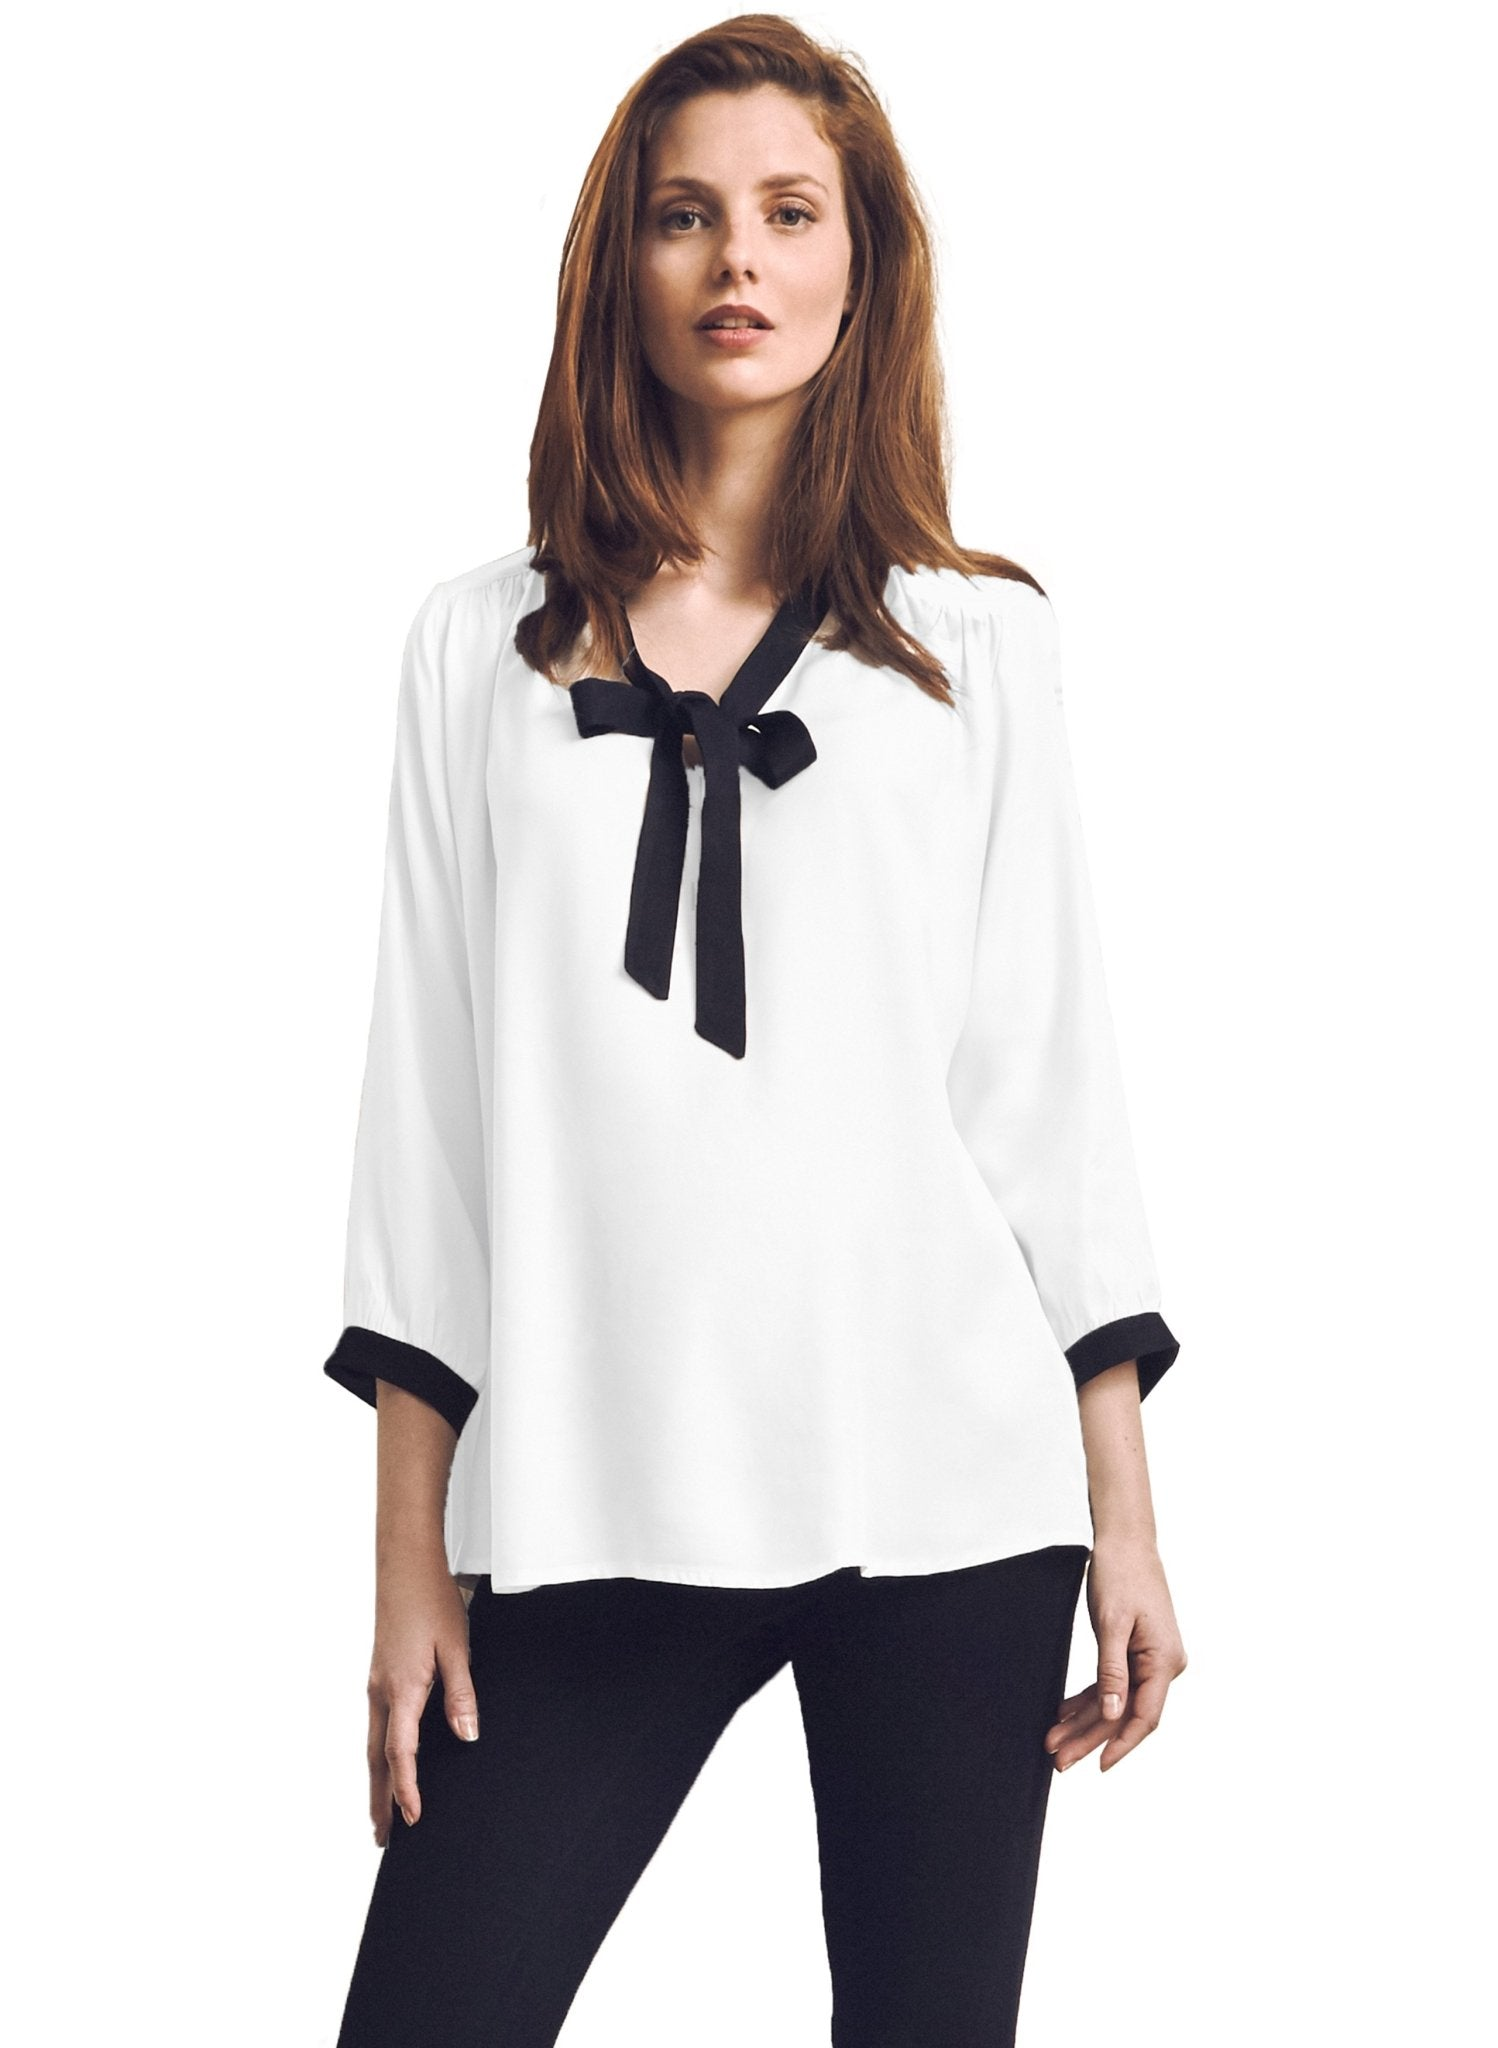 Serena Neck Tie Maternity Blouse - Off White - Mums and Bumps